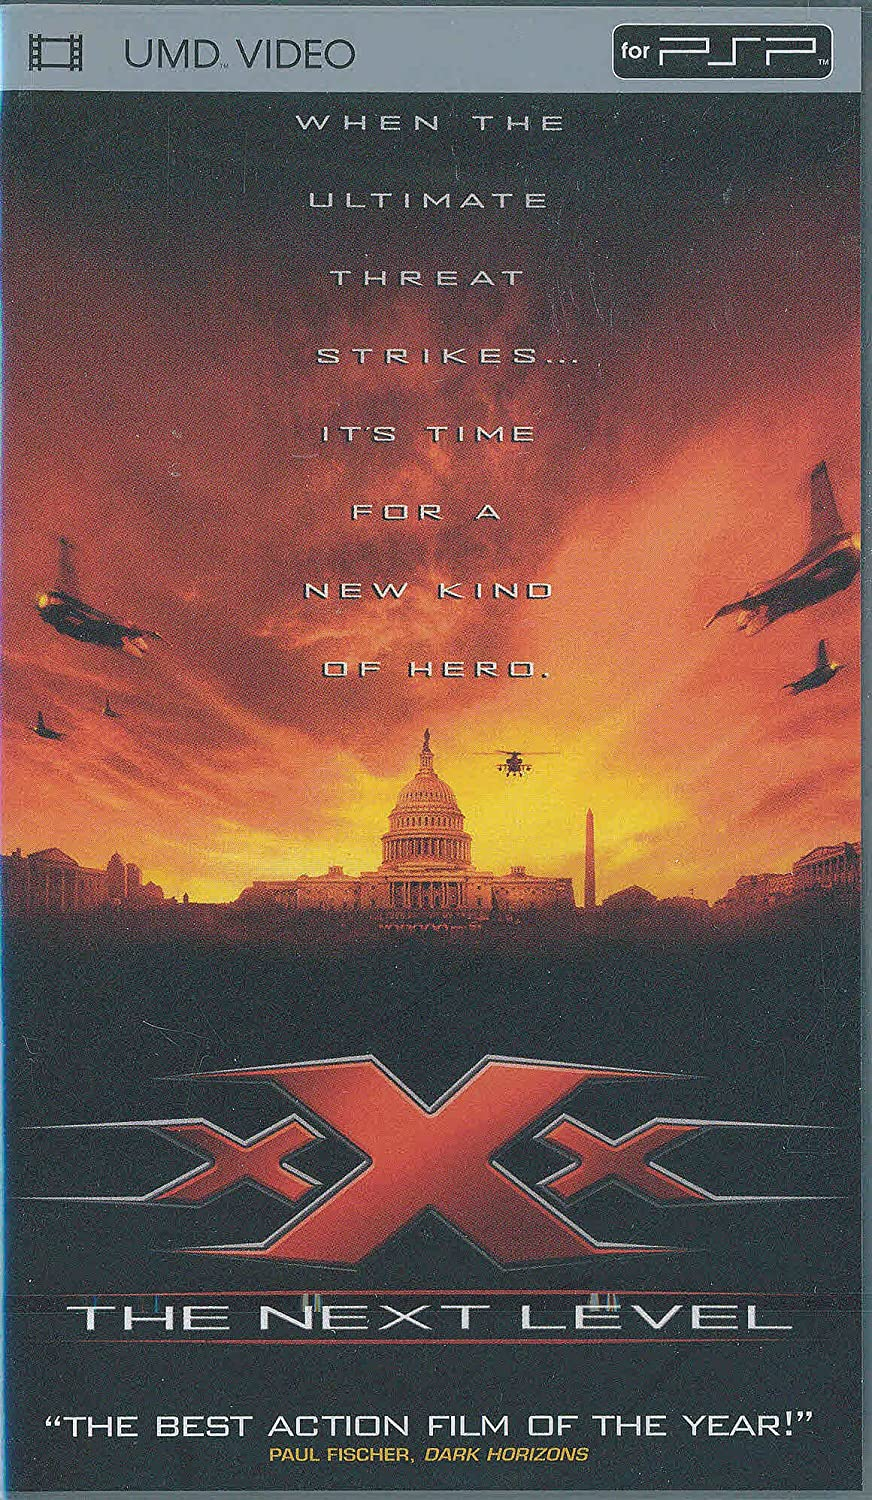 XXX 2 - The Next Level - UMD DISC FOR SONY PSP: Amazon.co.uk: PC & Video  Games